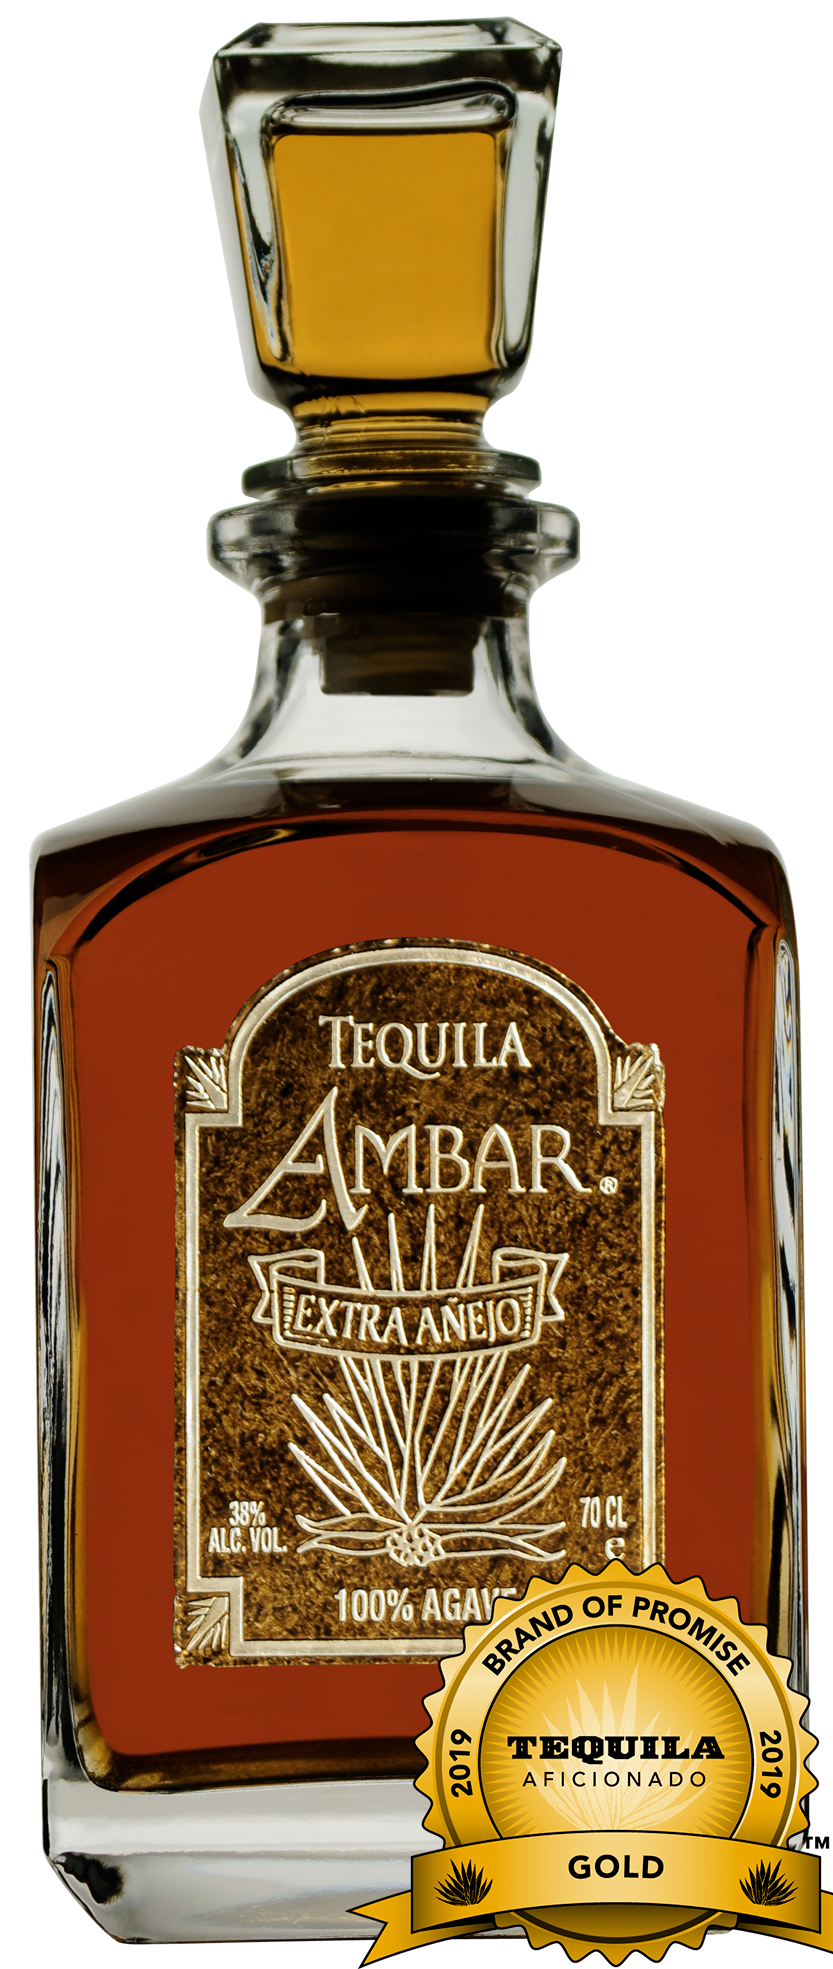 Tequila Ambar Ultra-Premium 100% Highland Agave, Extra Anejo, awarded a Gold Medal.